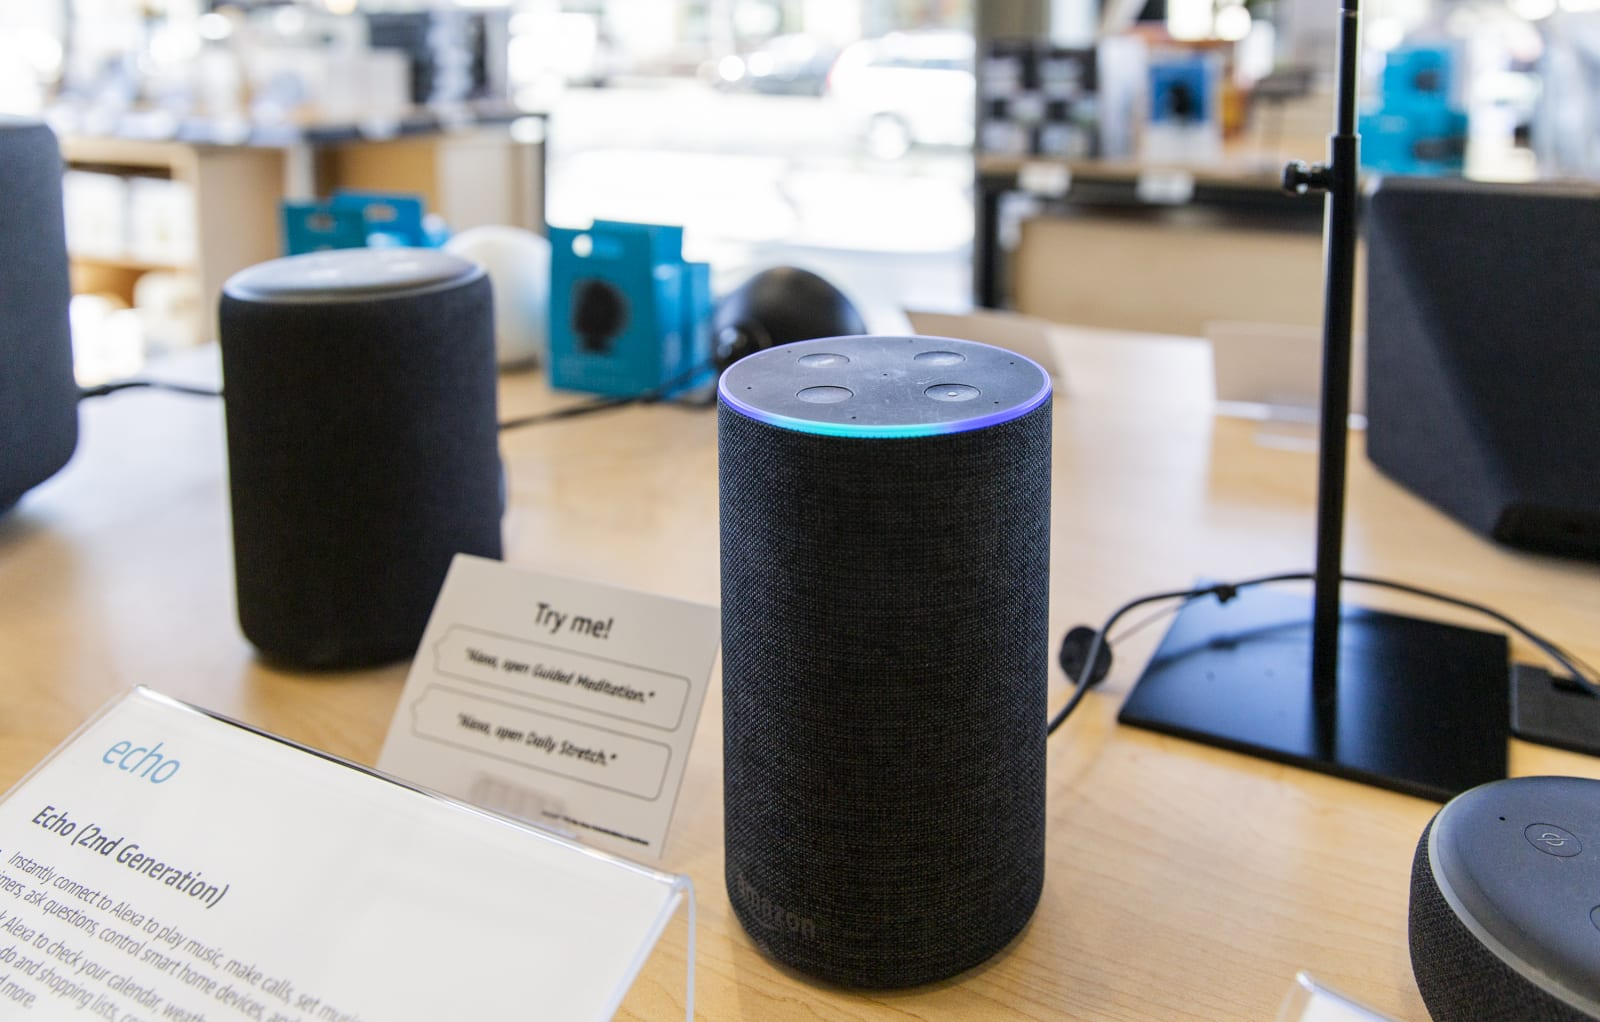 An Amazon employee might have listened to your Alexa recording